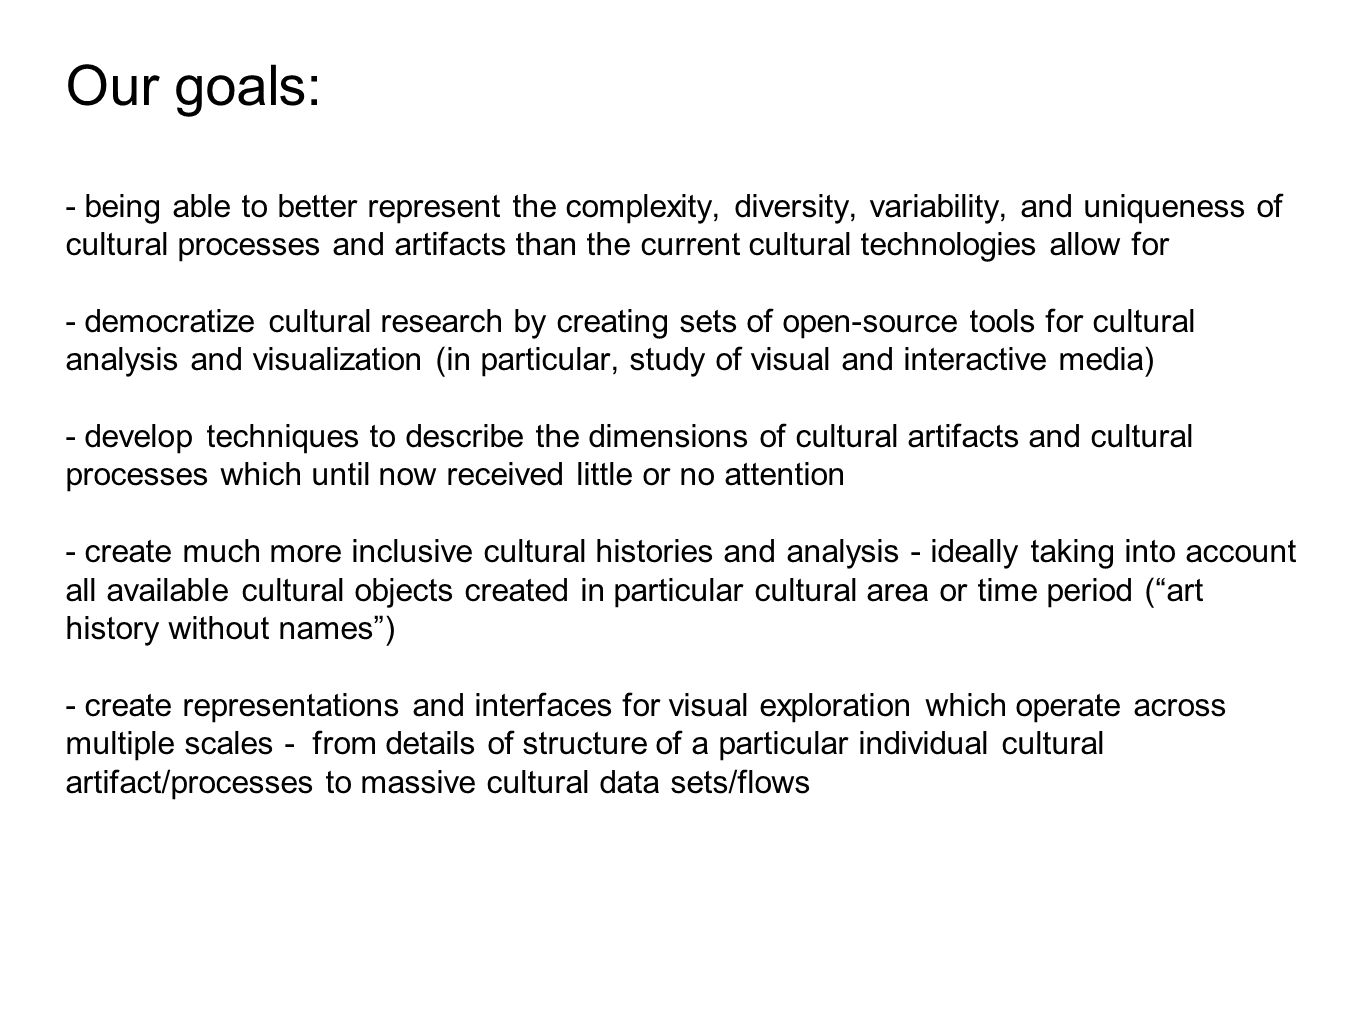 Our goals: - being able to better represent the complexity, diversity, variability, and uniqueness of cultural processes and artifacts than the curren